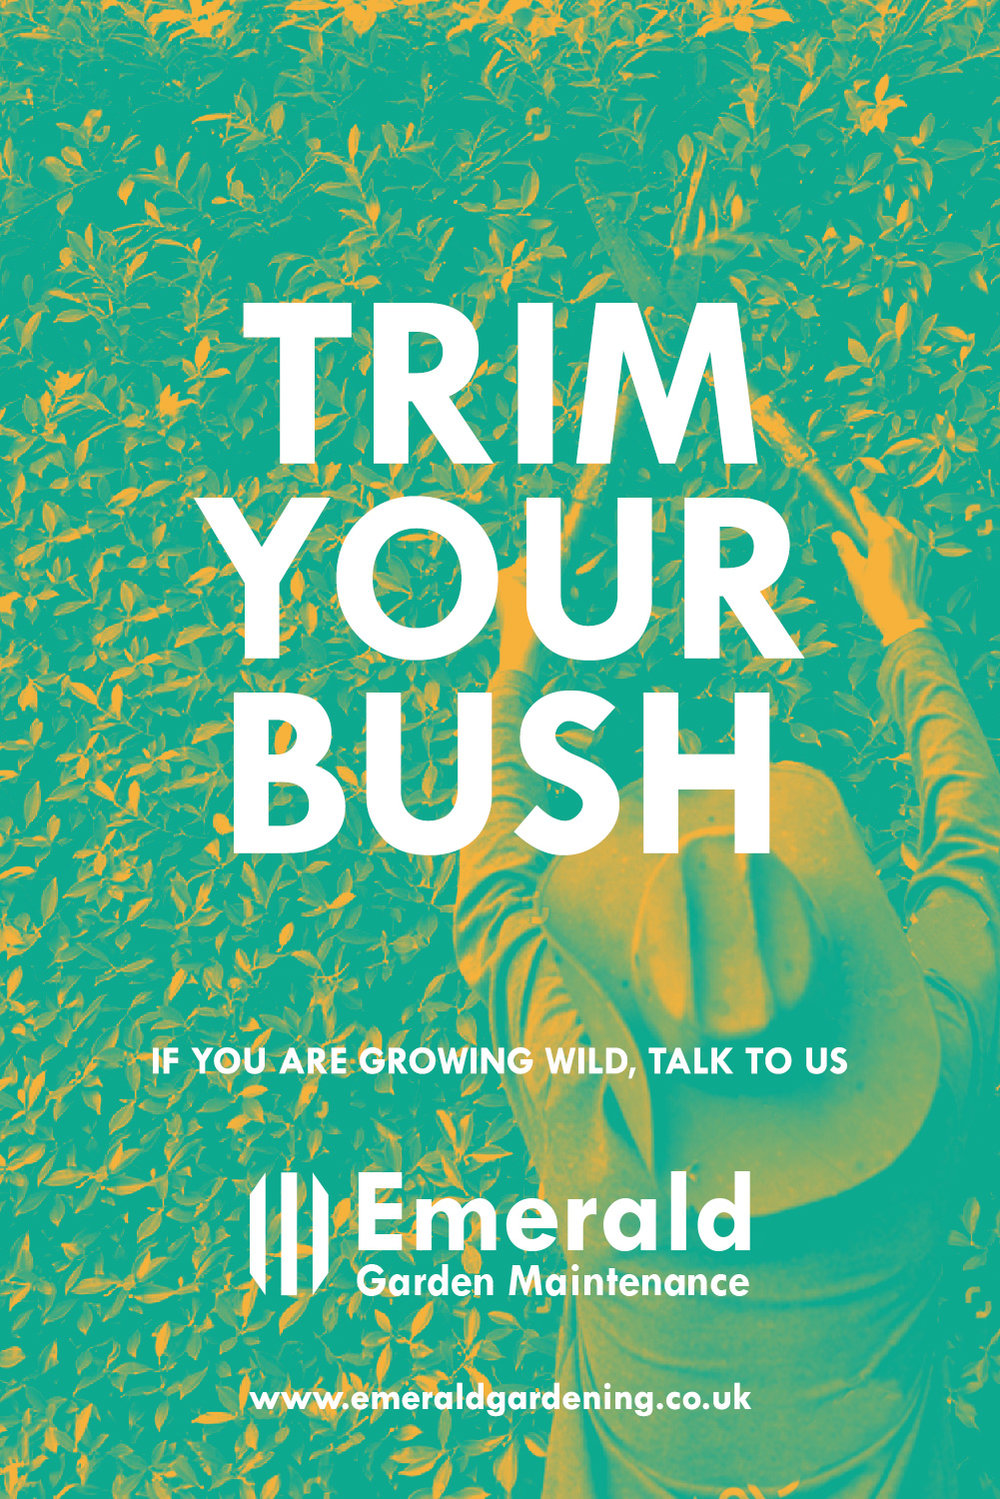 Emerald Garden Maintenance - Promotionsl poster concept - THAT Branding Company - Creative Design and Branding Agency in Newcastle and Gateshead.jpg